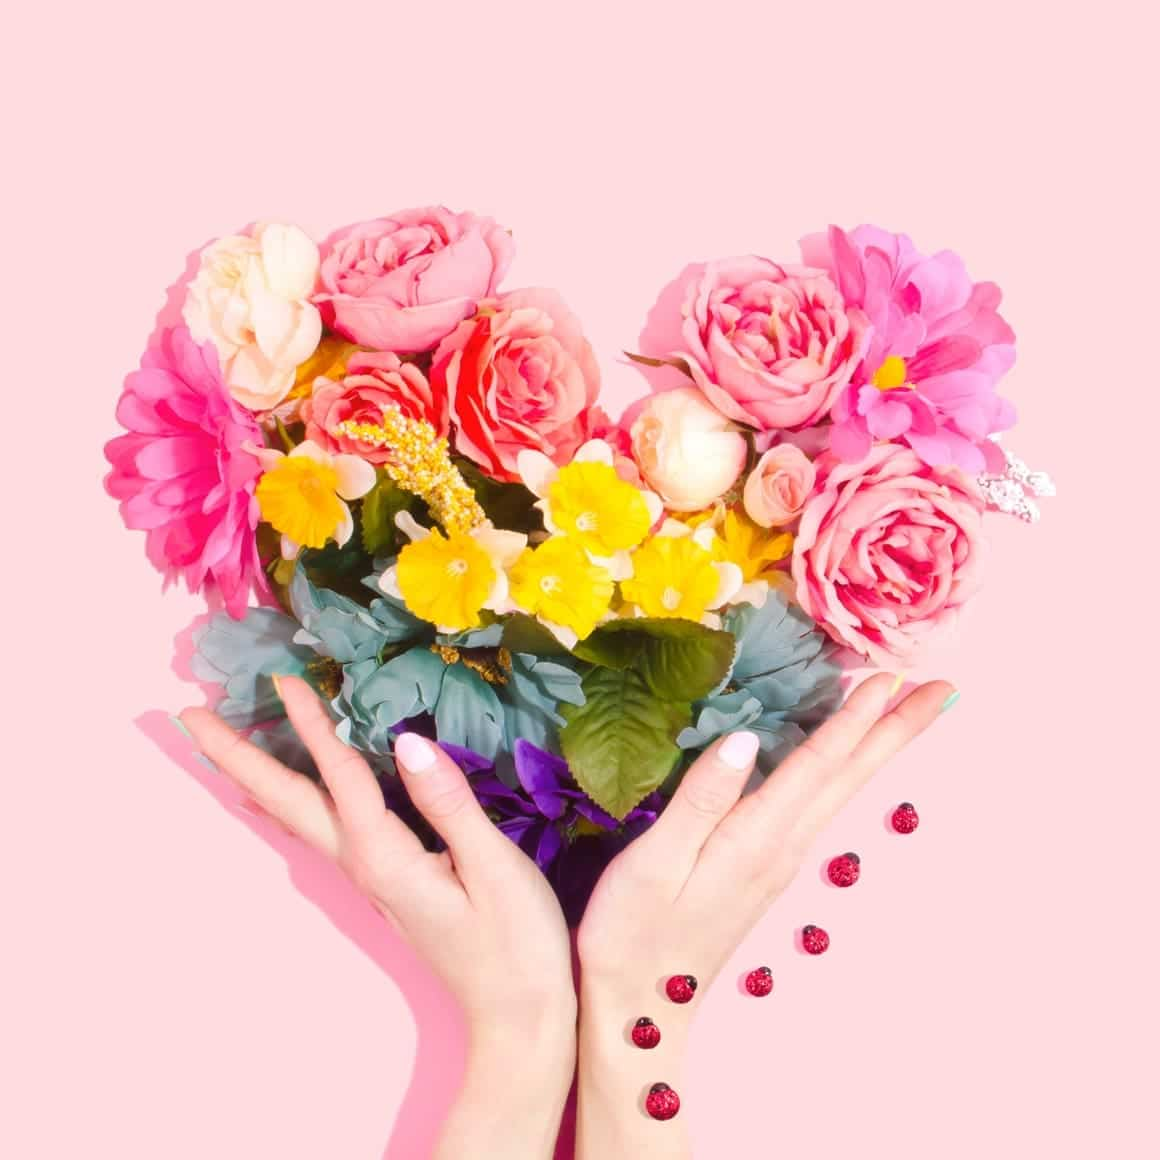 A heart of flowers being held by a womans hand. Self love exercises and why we need them.